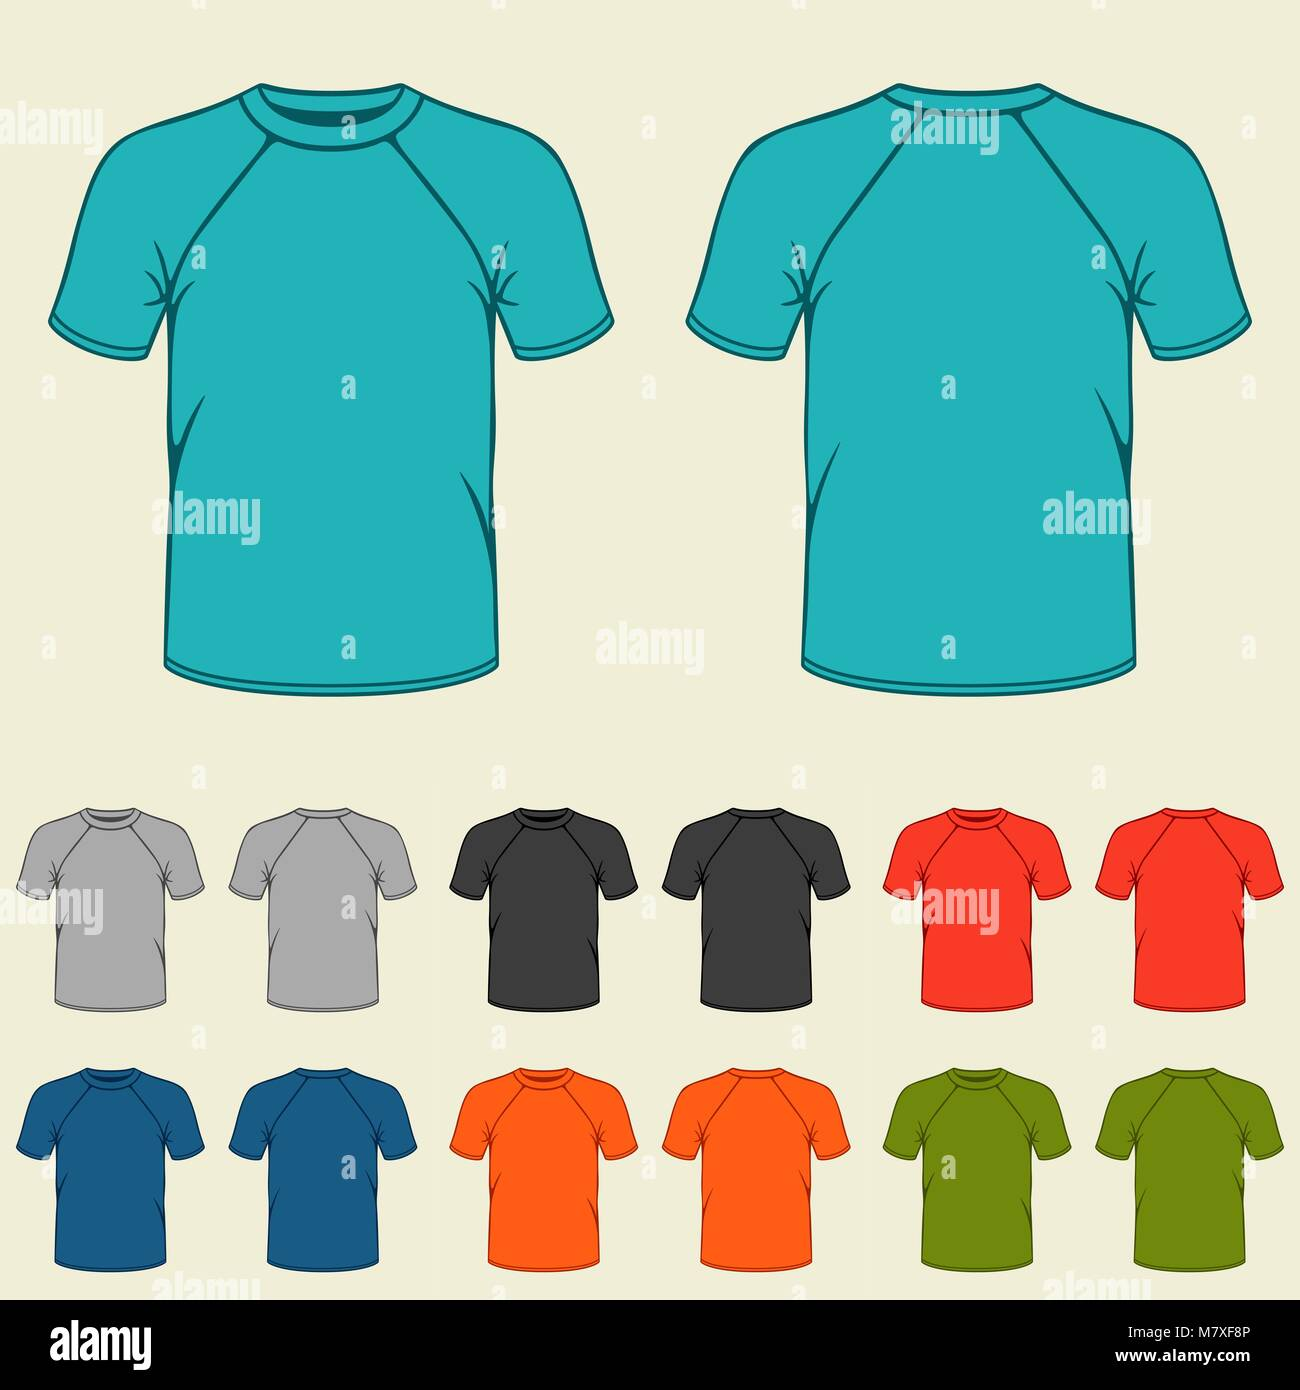 Blank T Shirts Template Front Back Stock Photos & Blank T Shirts ...